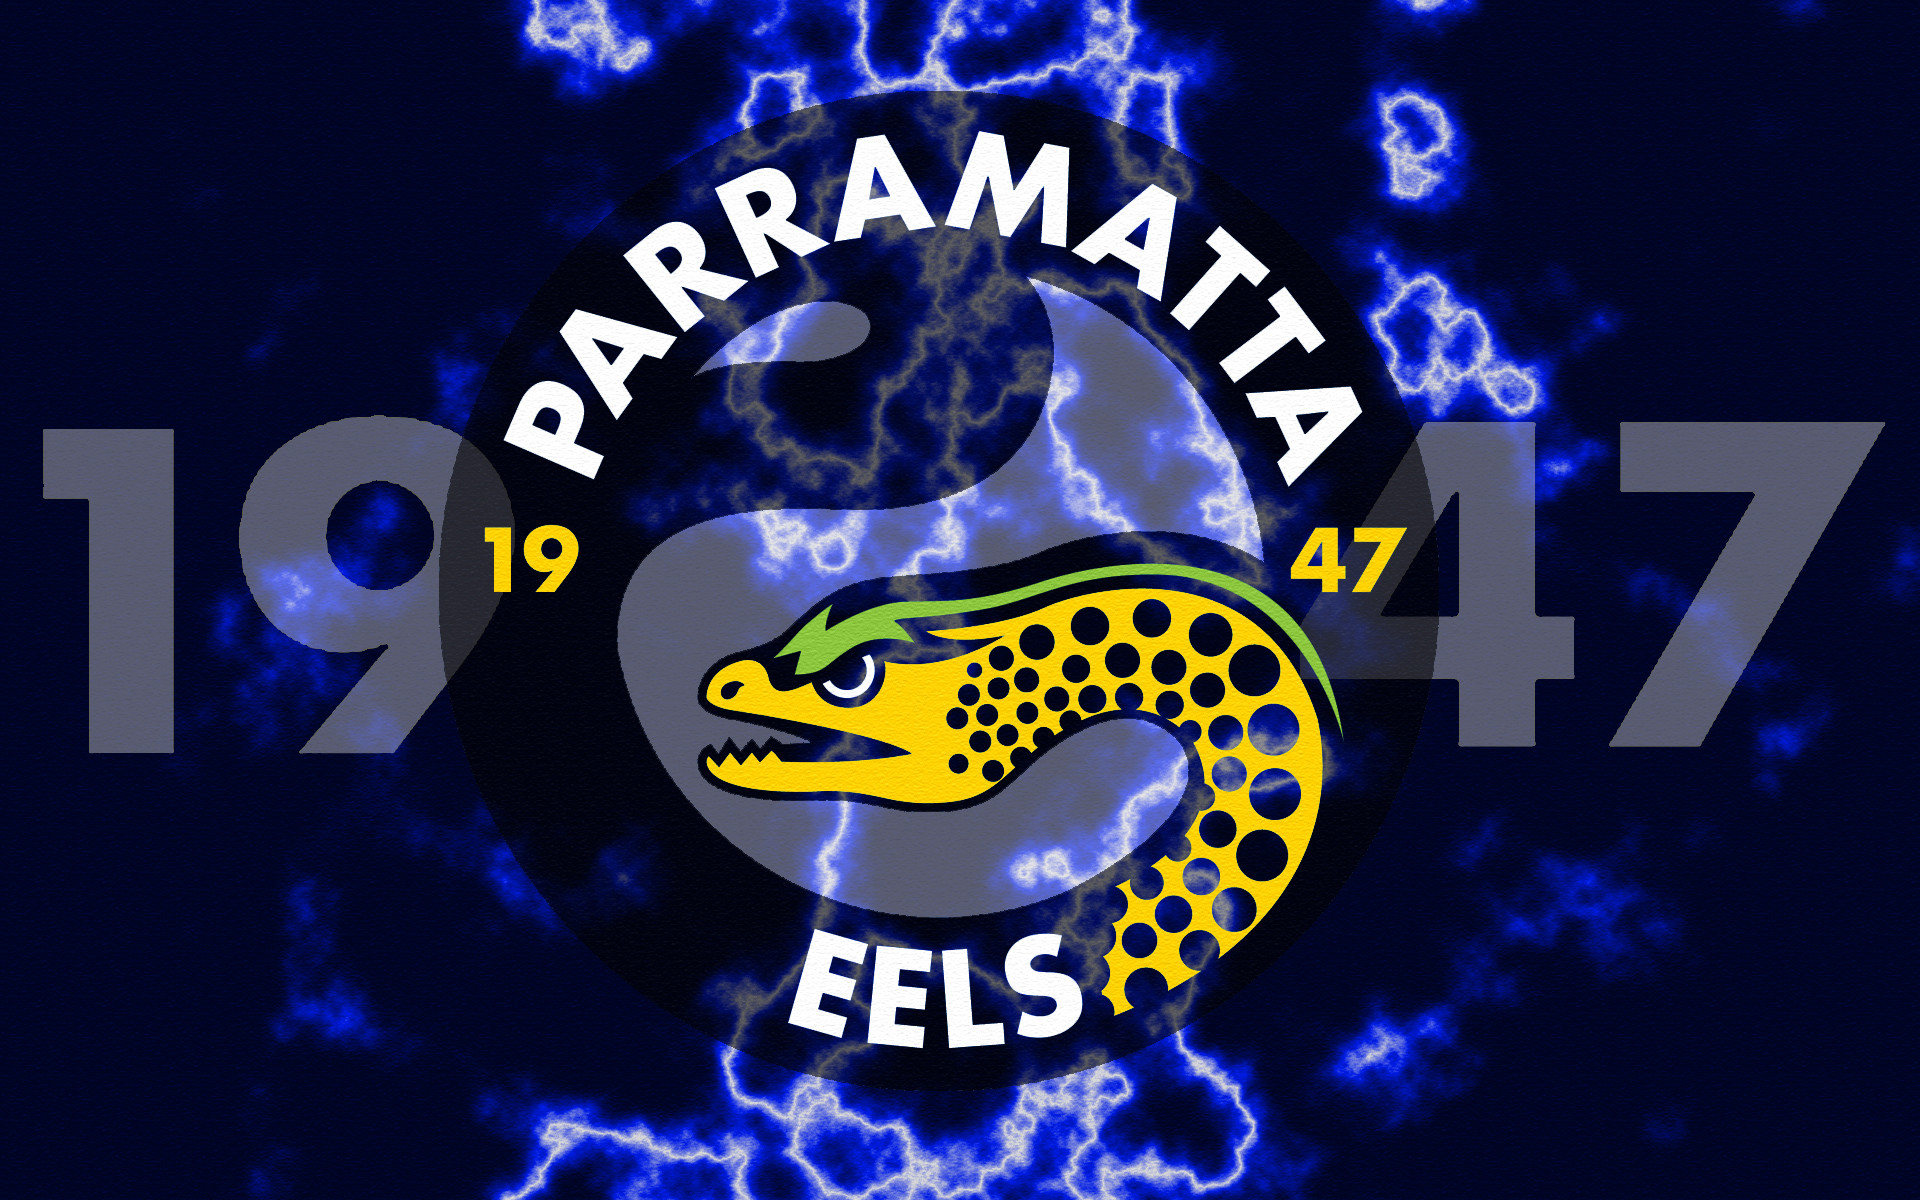 1920x1200 Parramatta Eels 1947 Lightning Wallpaper by Sunnyboiiii